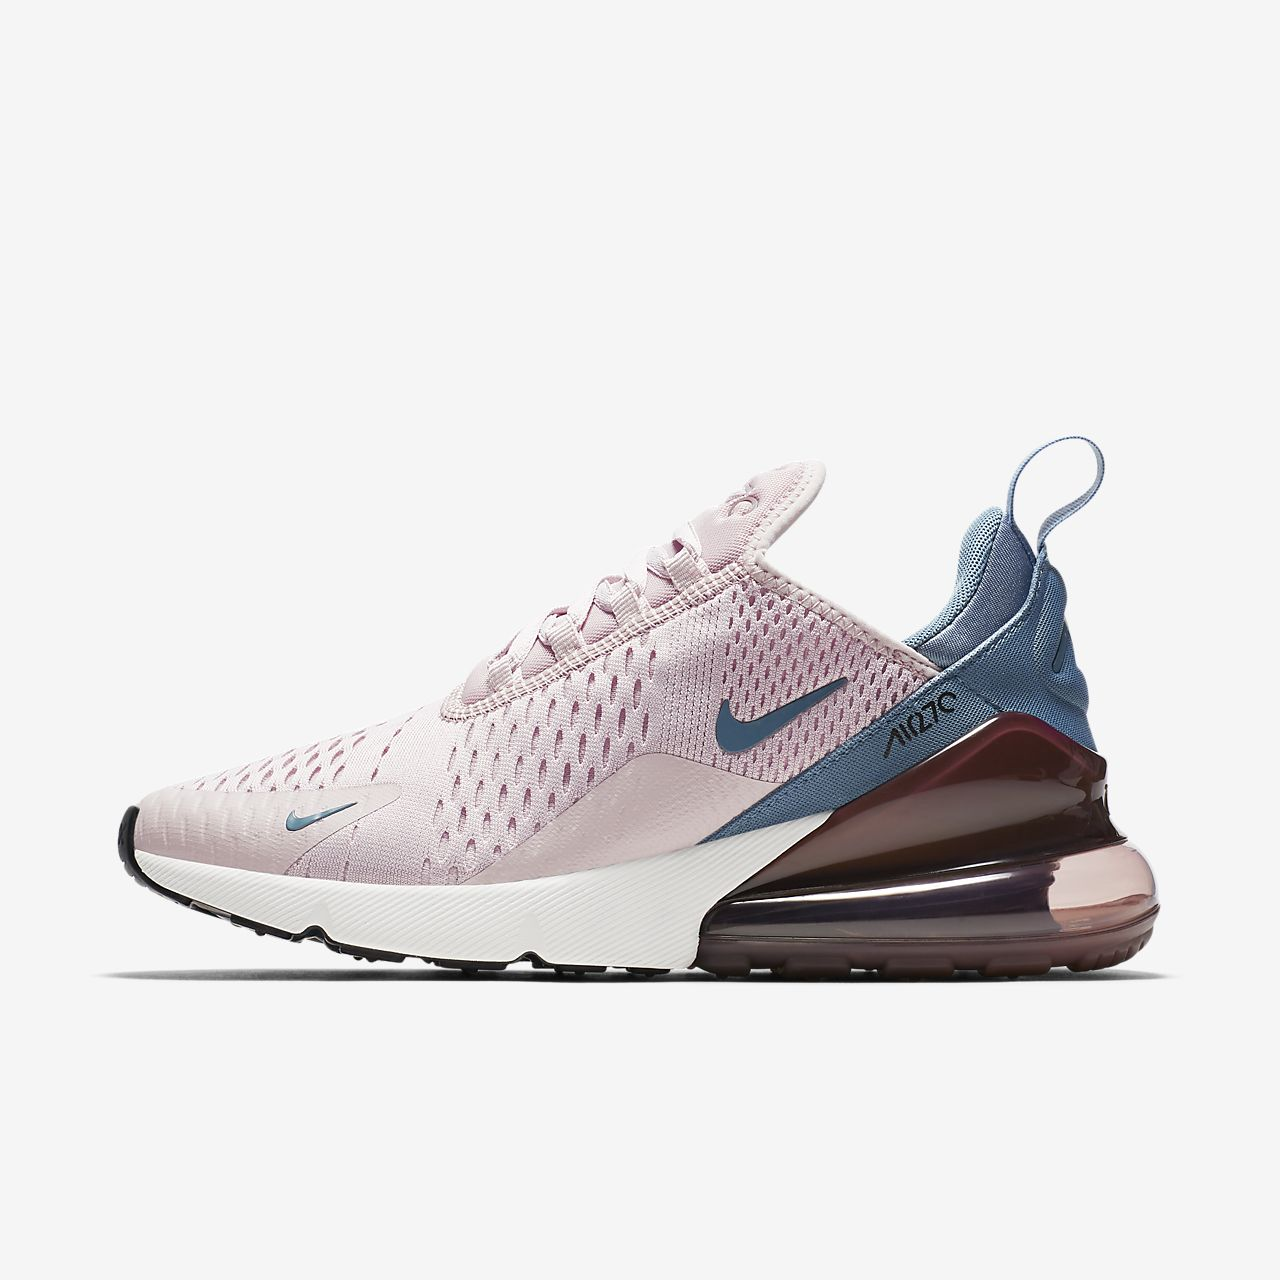 separation shoes 82917 5f0c7 ... Nike Air Max 270 Women s Shoe